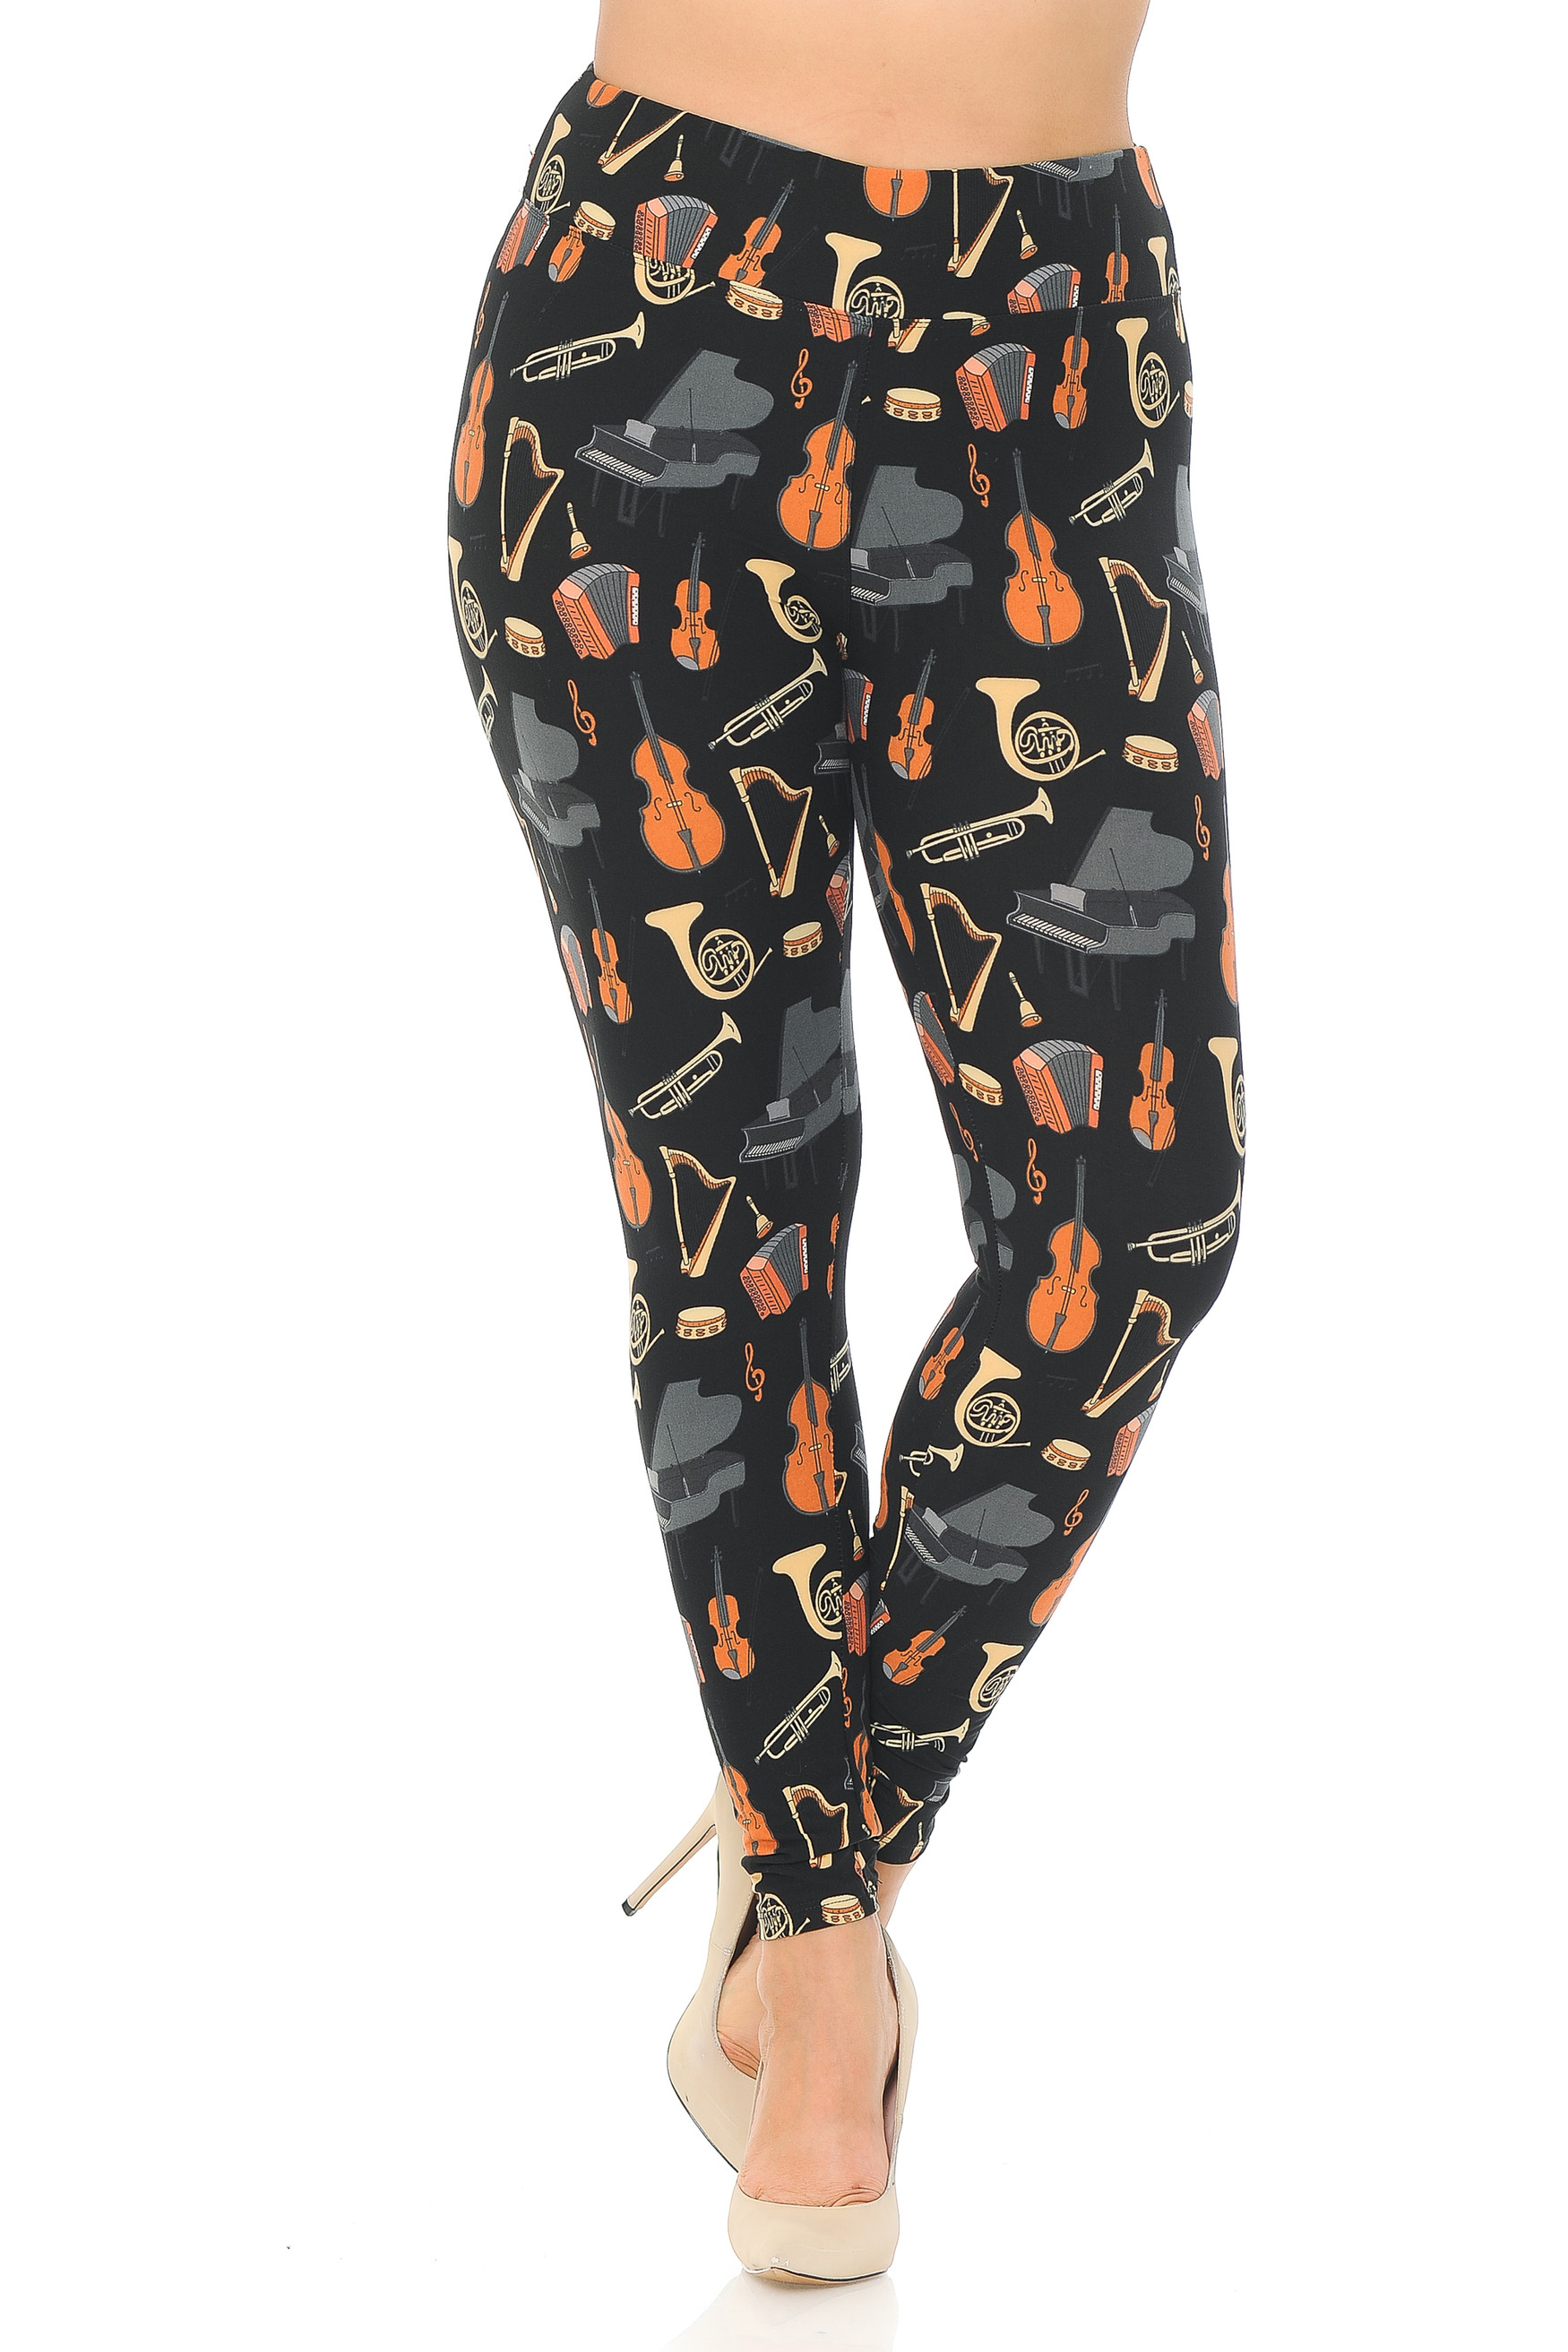 Brushed Musical Instrument Extra Plus Size Leggings - 3X-5X